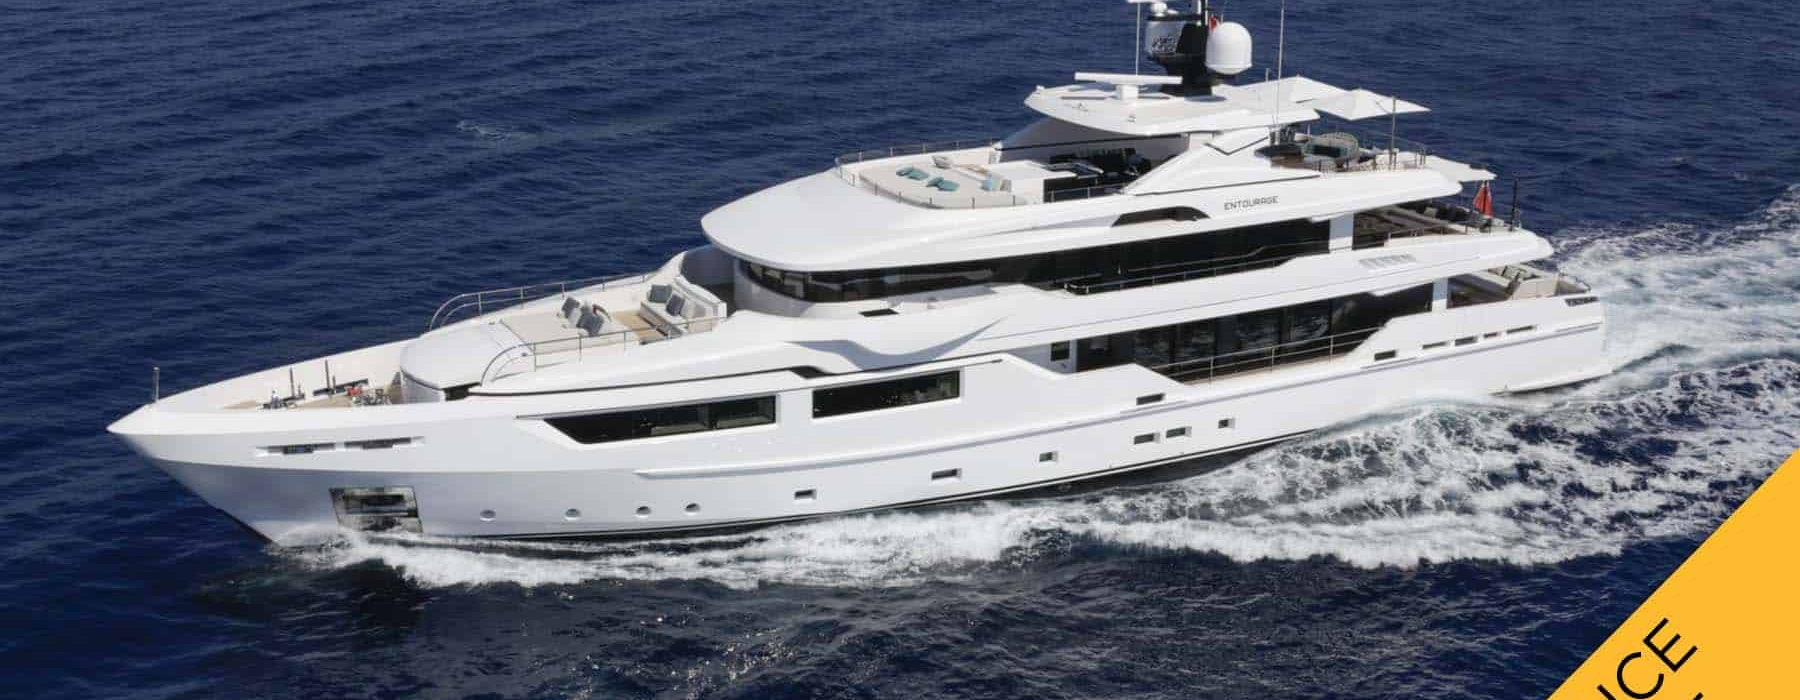 ENTOURAGE Admiral Luxury yacht for sale PRICE REDUCED